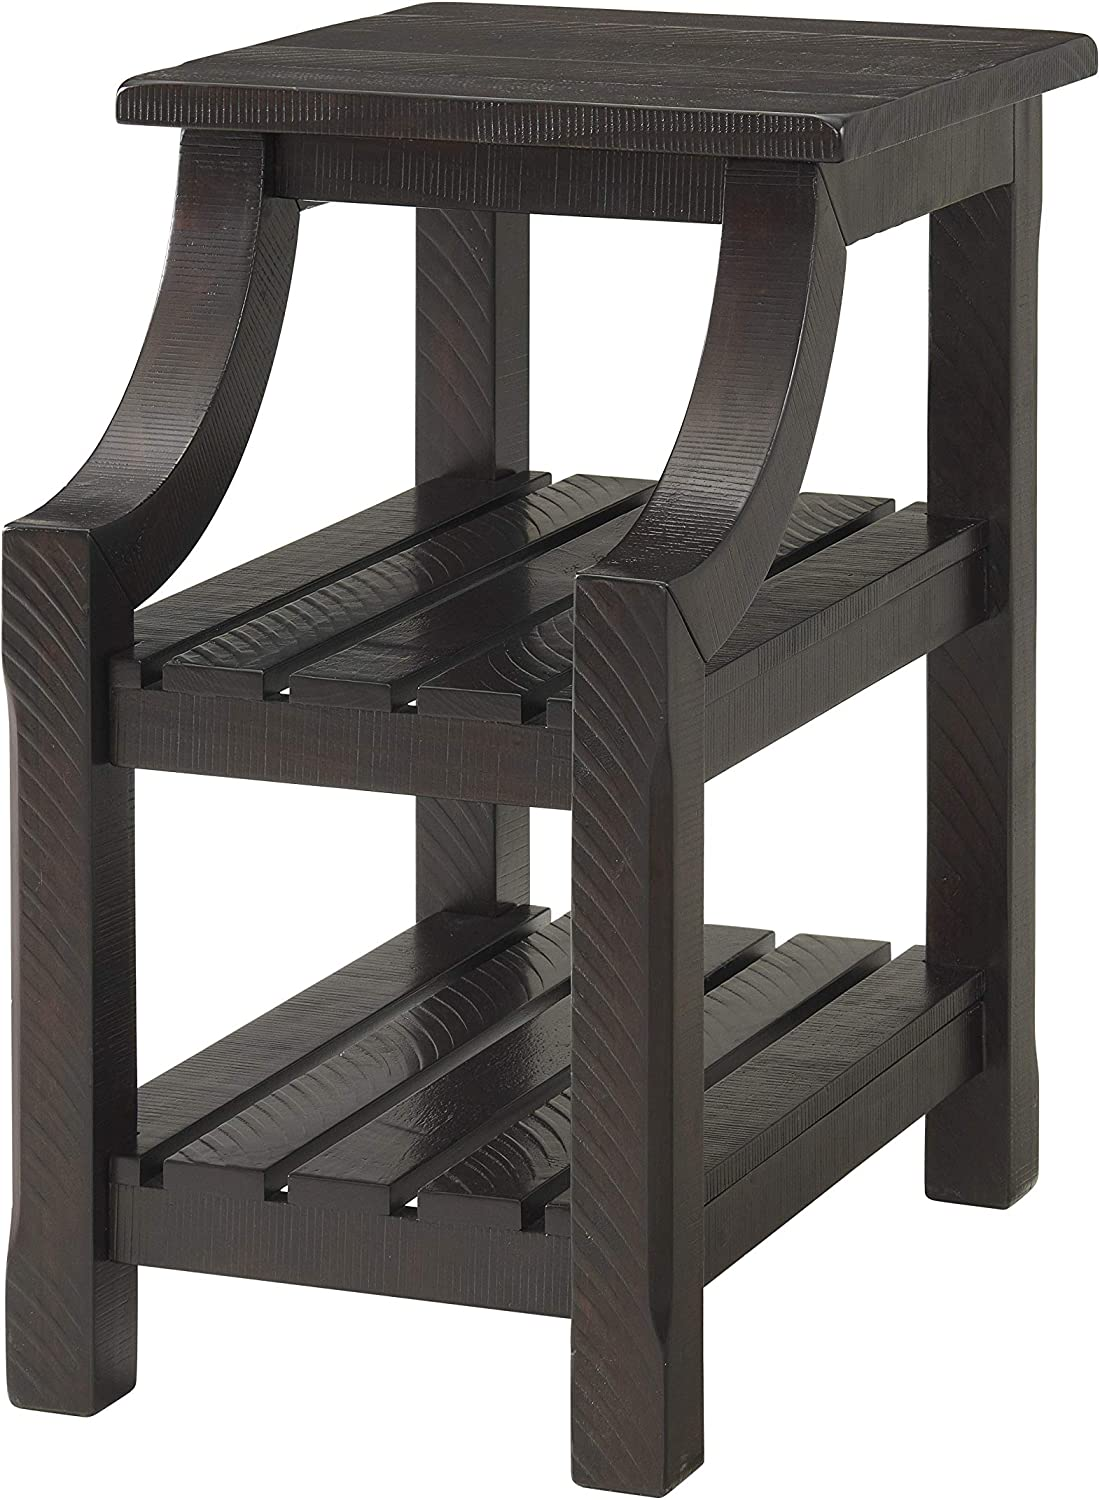 Martin Svensson Home Barn Door Chairside Table with Power, Espresso